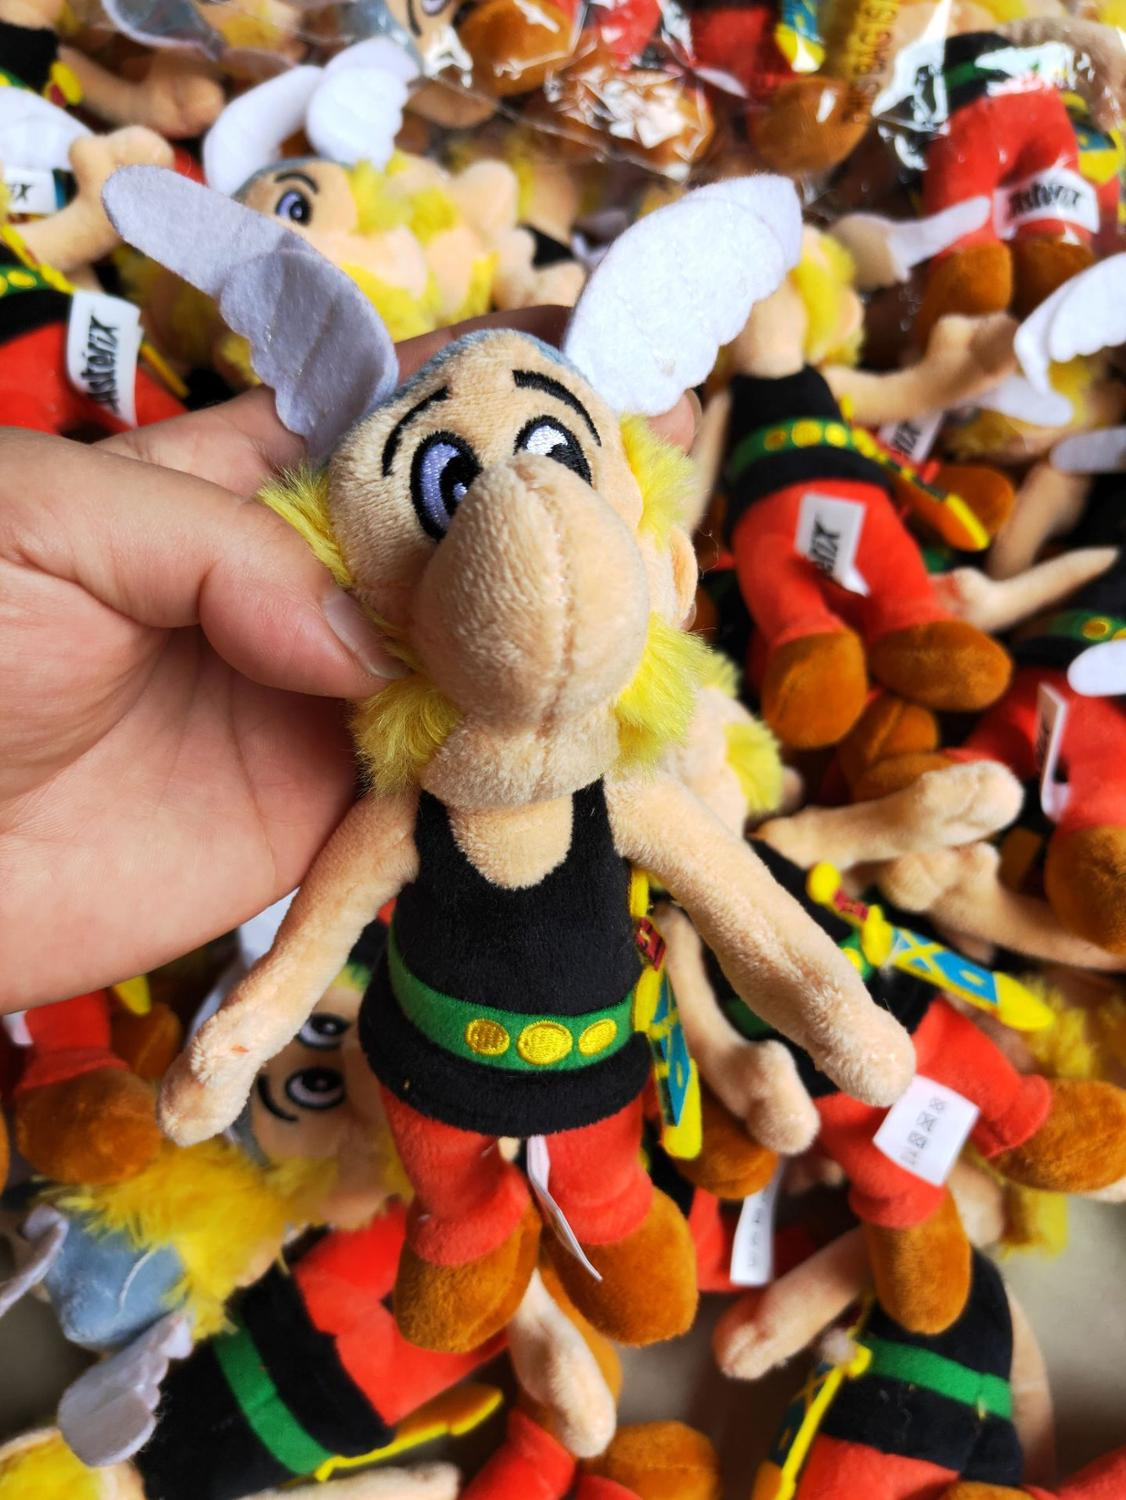 1pcs 18cm Classic France Cartoon The Adventures of Asterix plush toy ascotte Doll Soft Stuffed Toys Kids Childrens Gifts